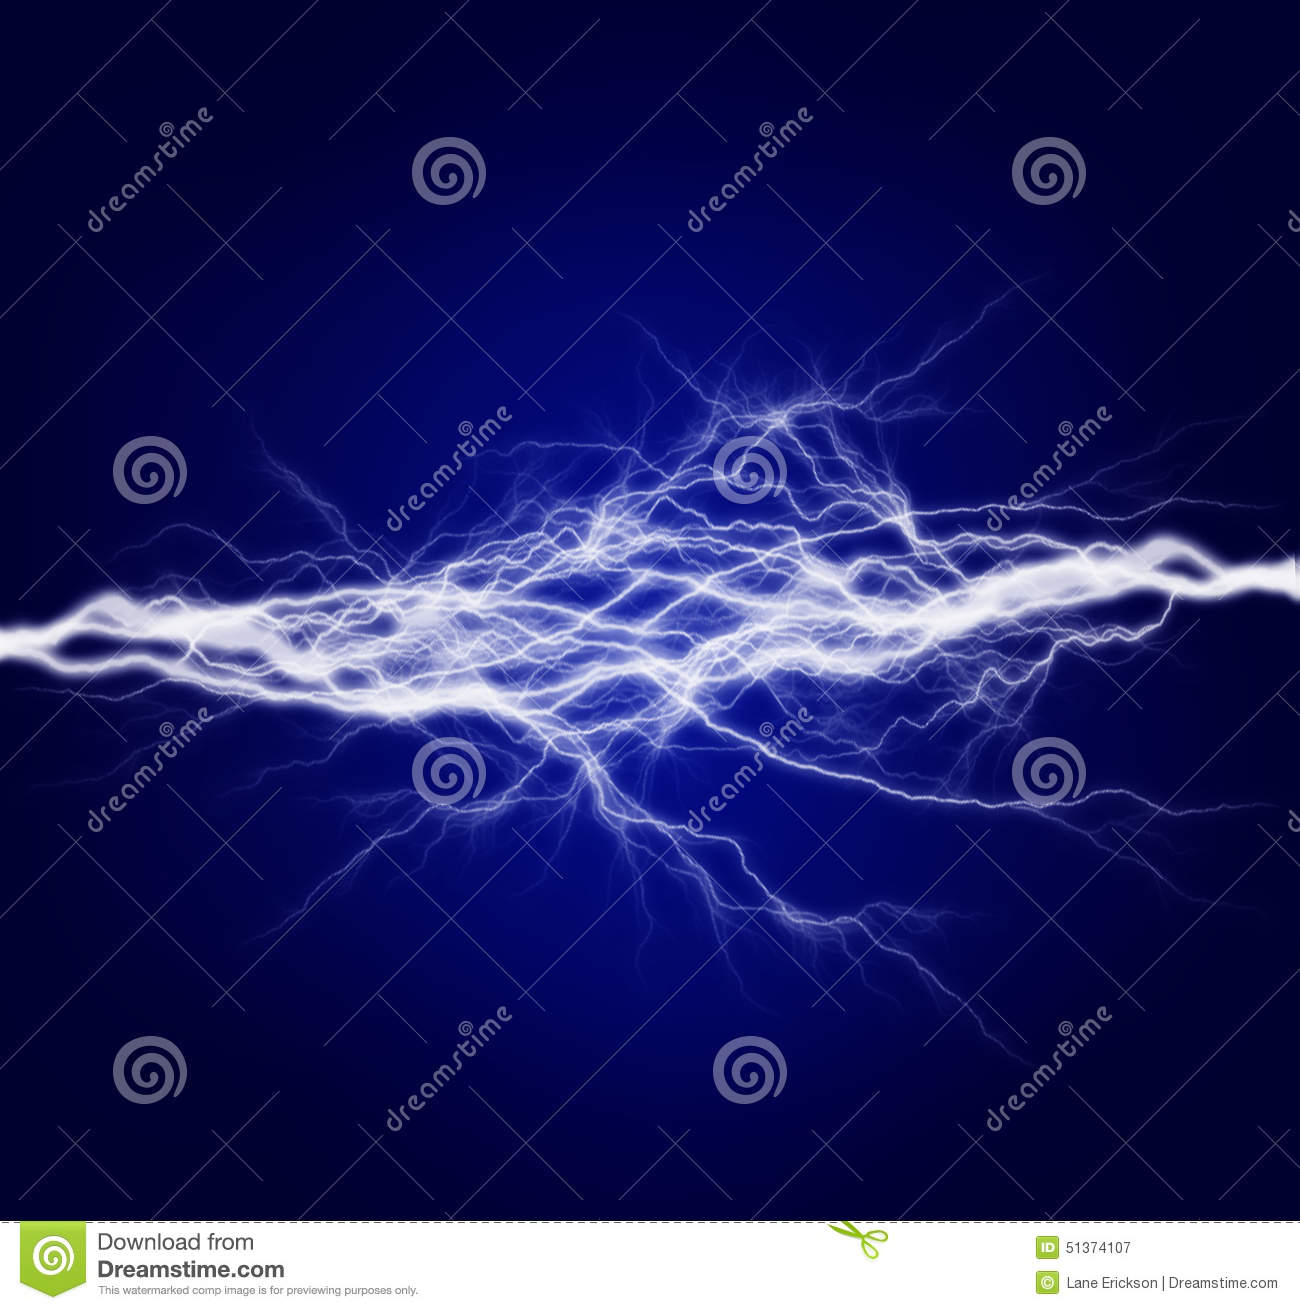 Pure Energy and Electricity